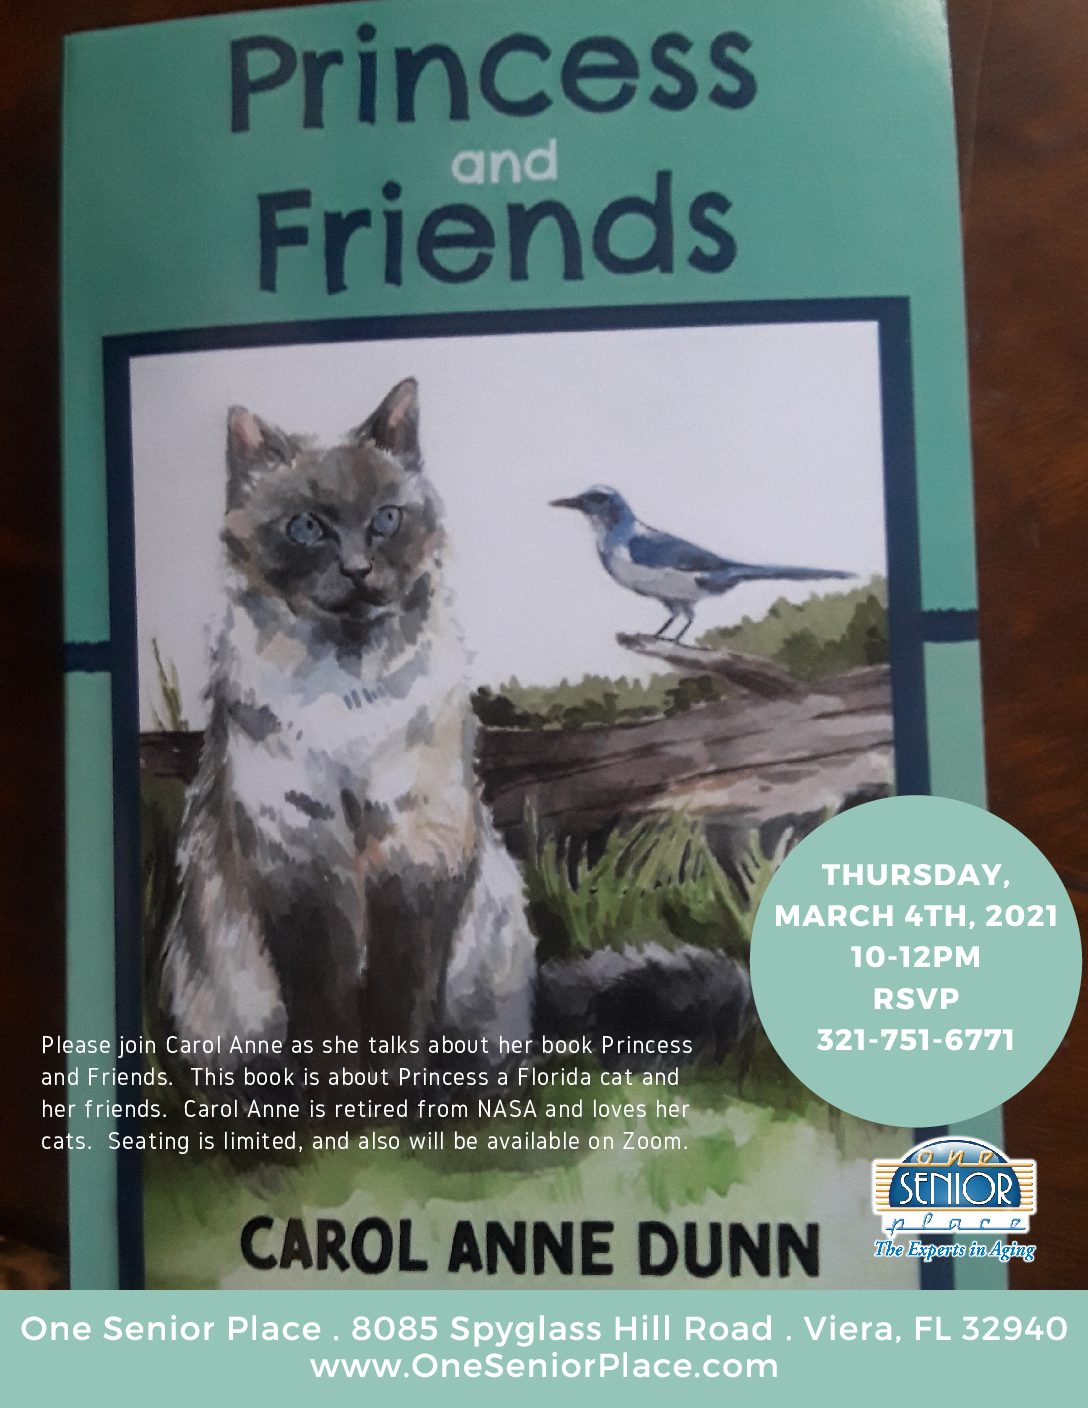 Princess and Friends presented by Author Carol Anne Dunn with the Cape Canaveral Pen Women's Group and One Senior Place